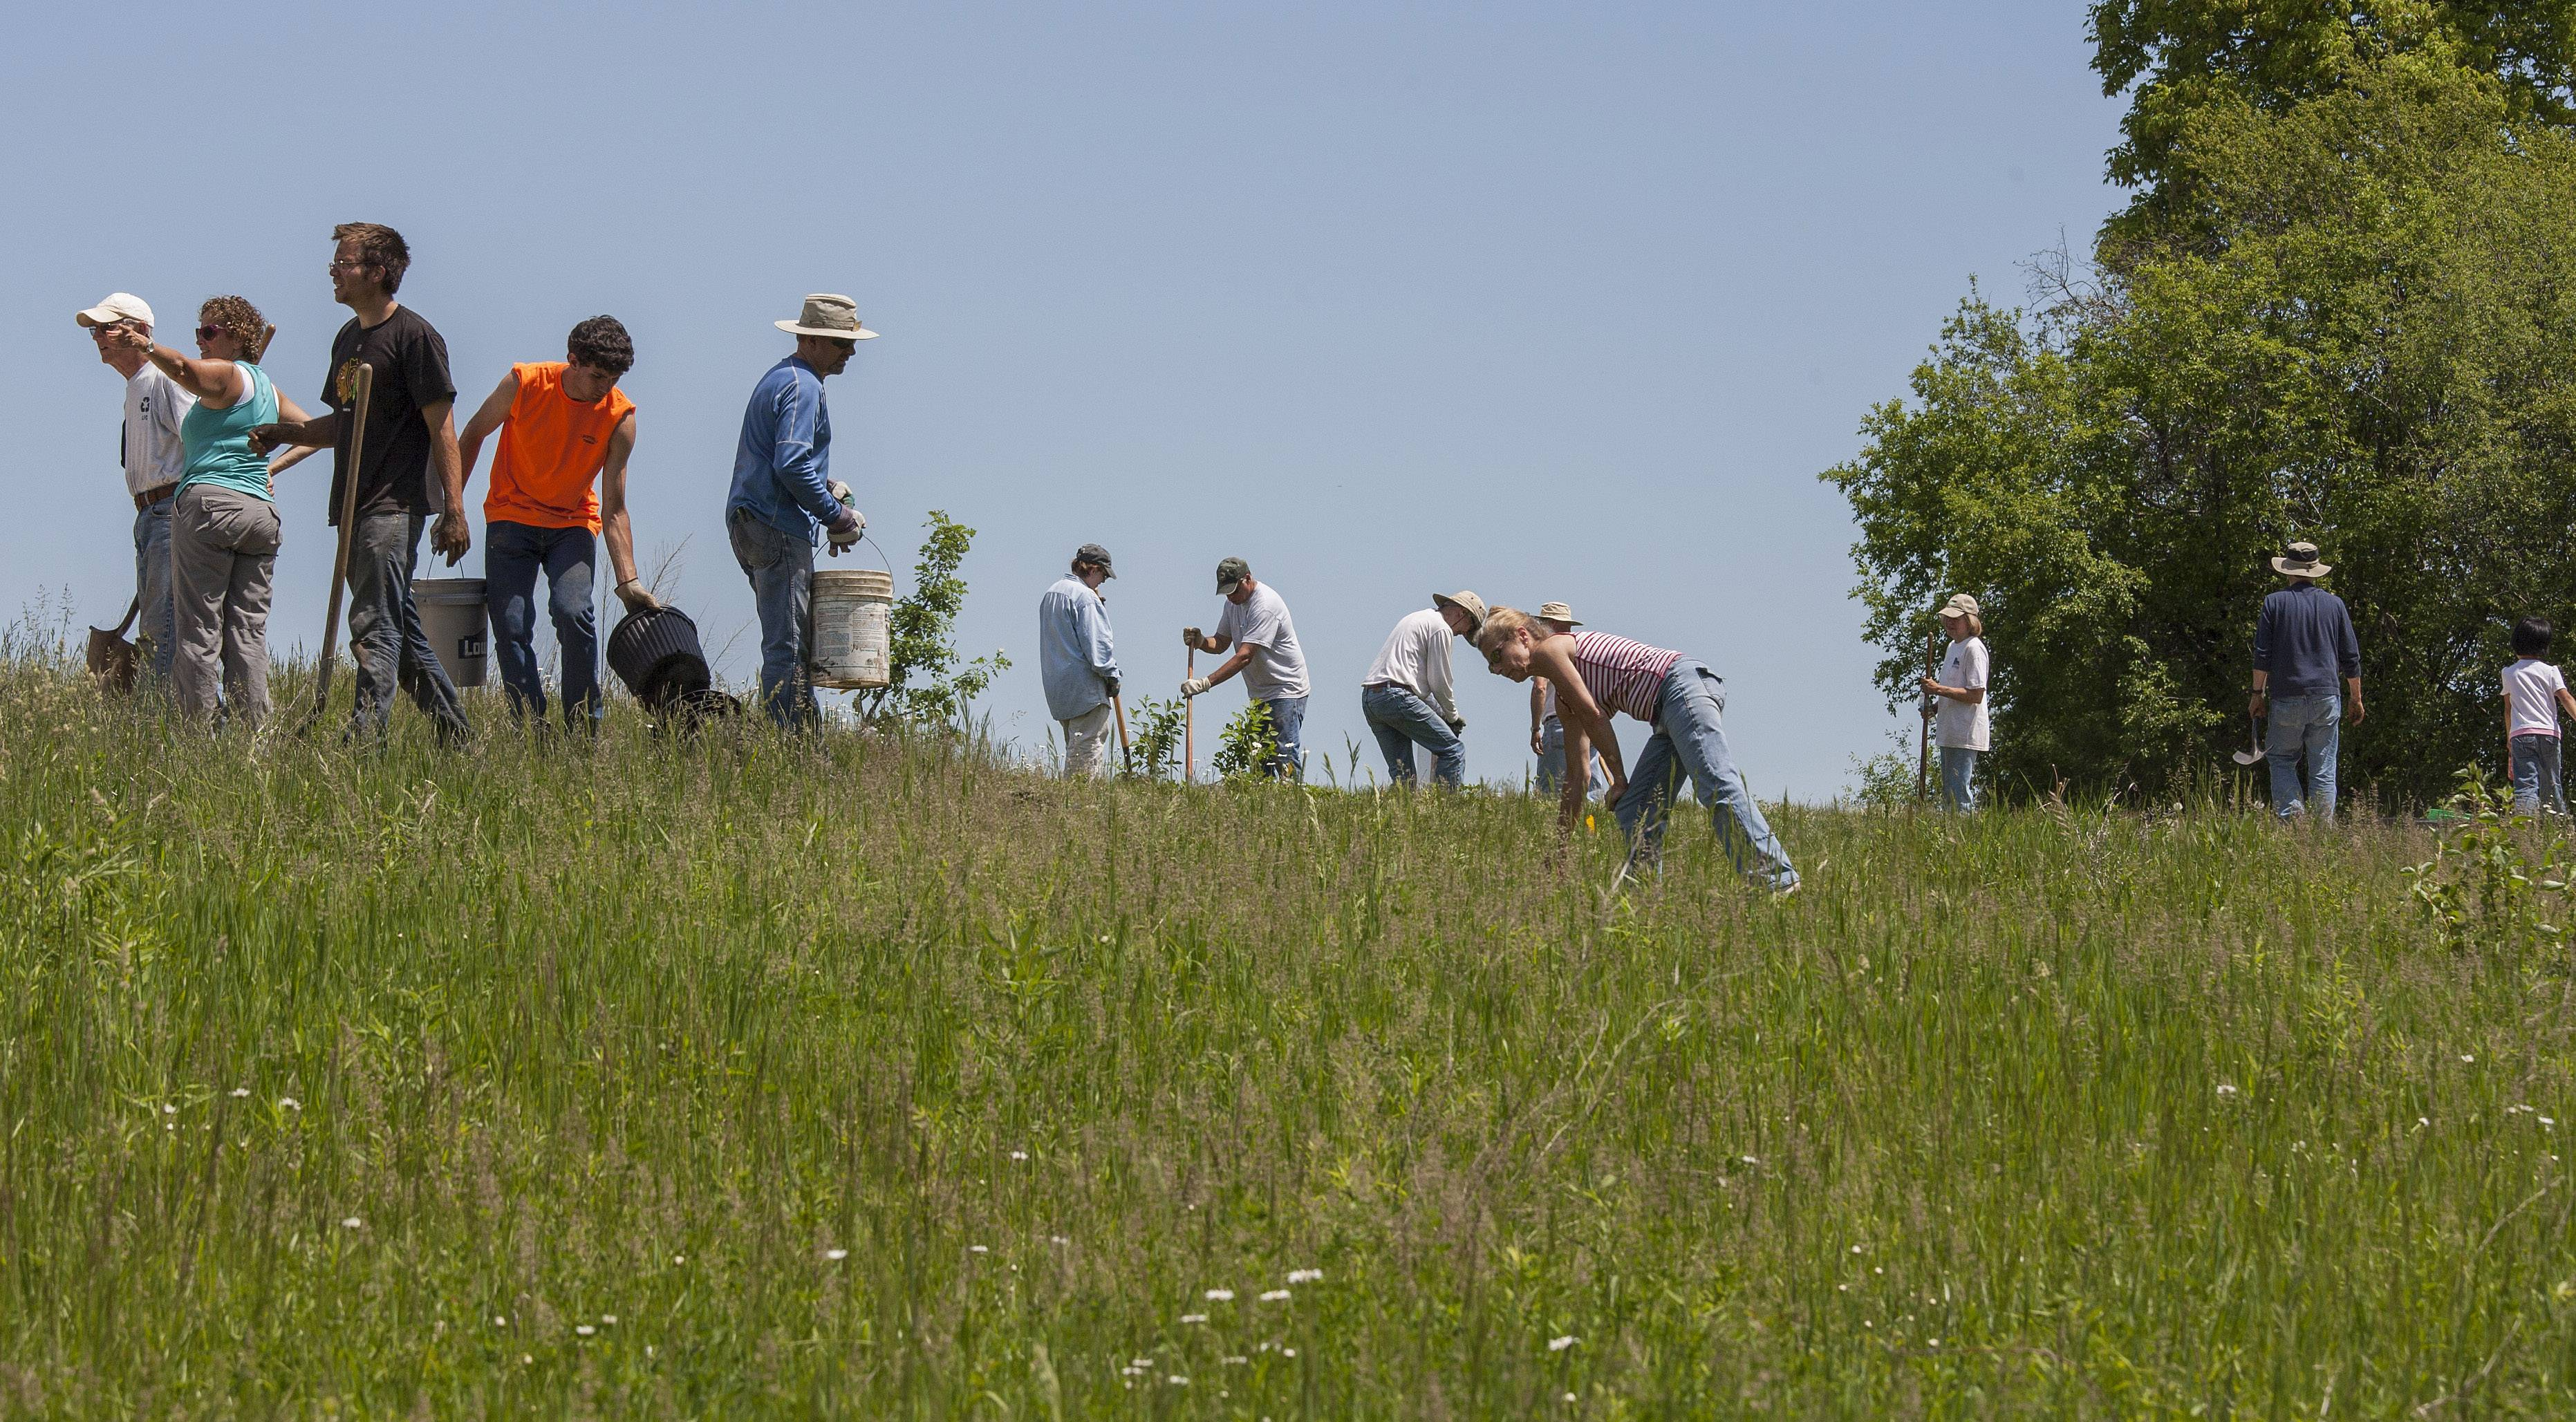 Twenty-three volunteers plant 160 trees and shrubs on a portion of Libertyville Township Open Space